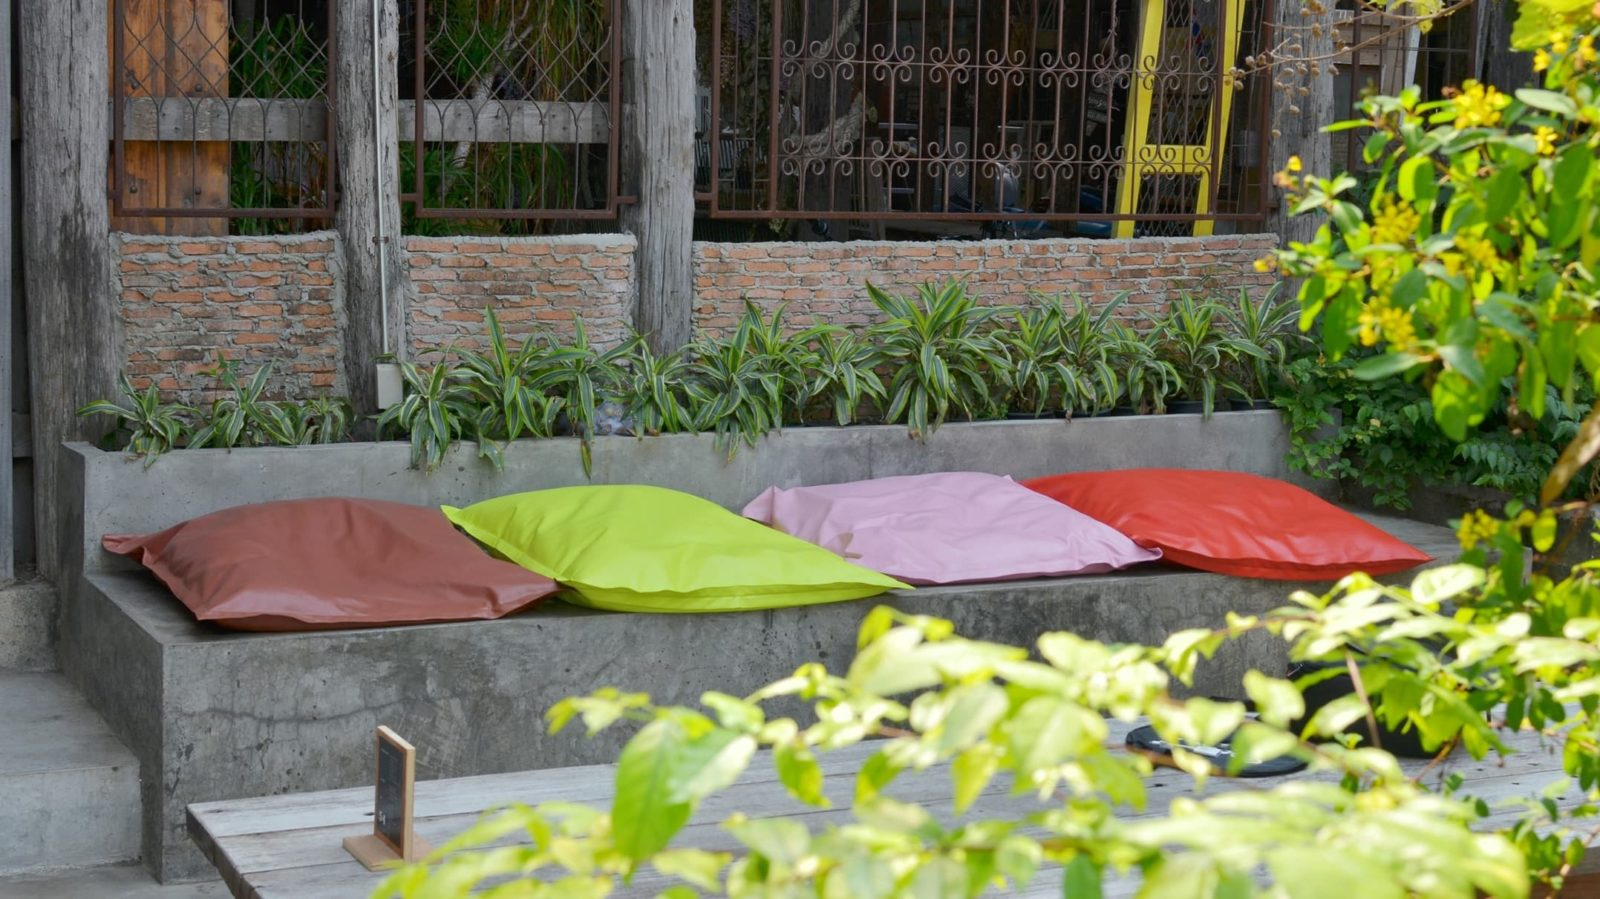 stone bench in a garden with various coloured cushions